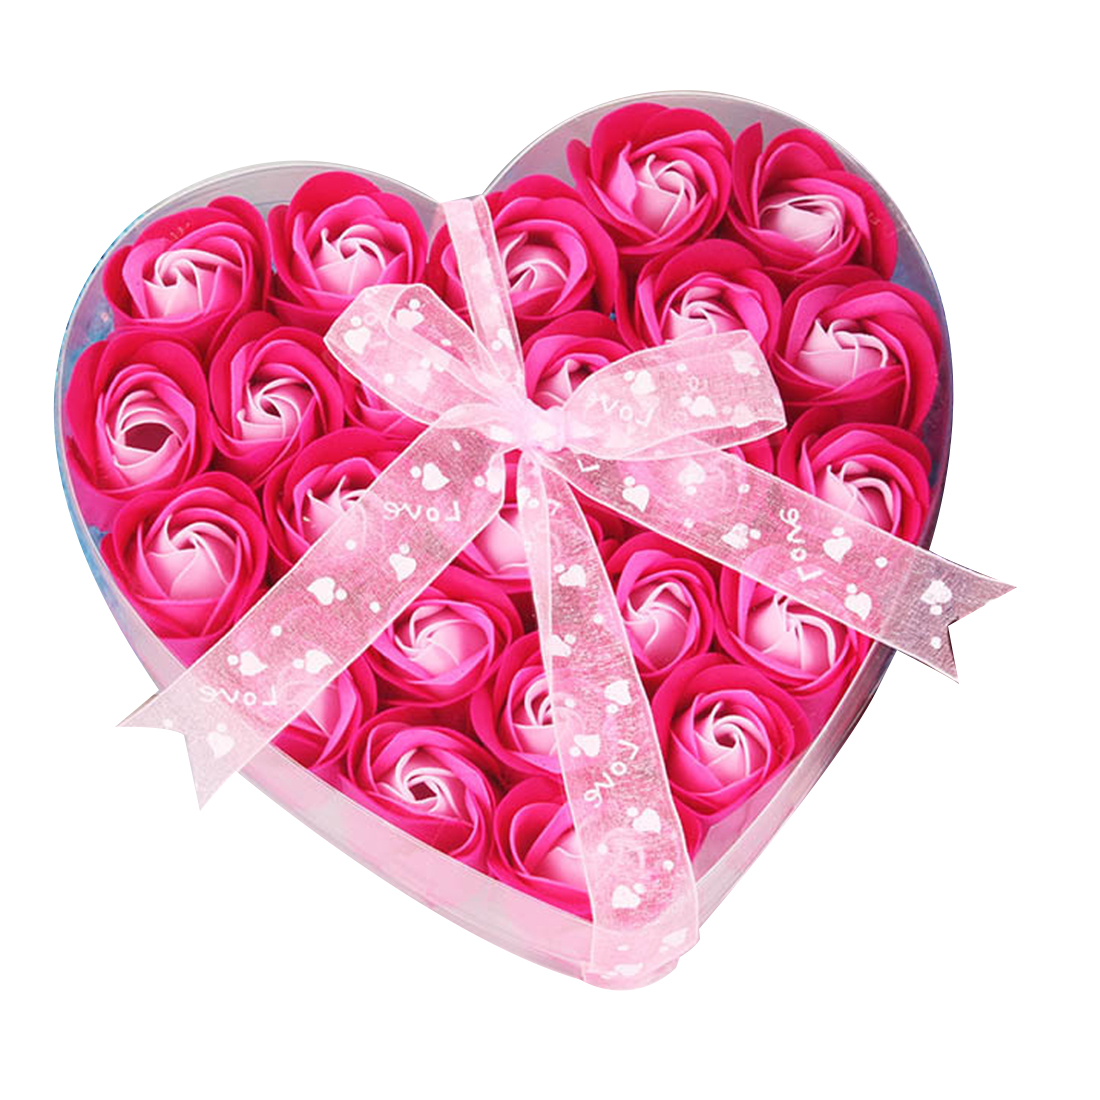 Simulation Rose Petal Paper Soap Wedding Decoration Valentine Gift  Heart Shape Pack Flower Scented Washing Cleaning Hand 24pcs